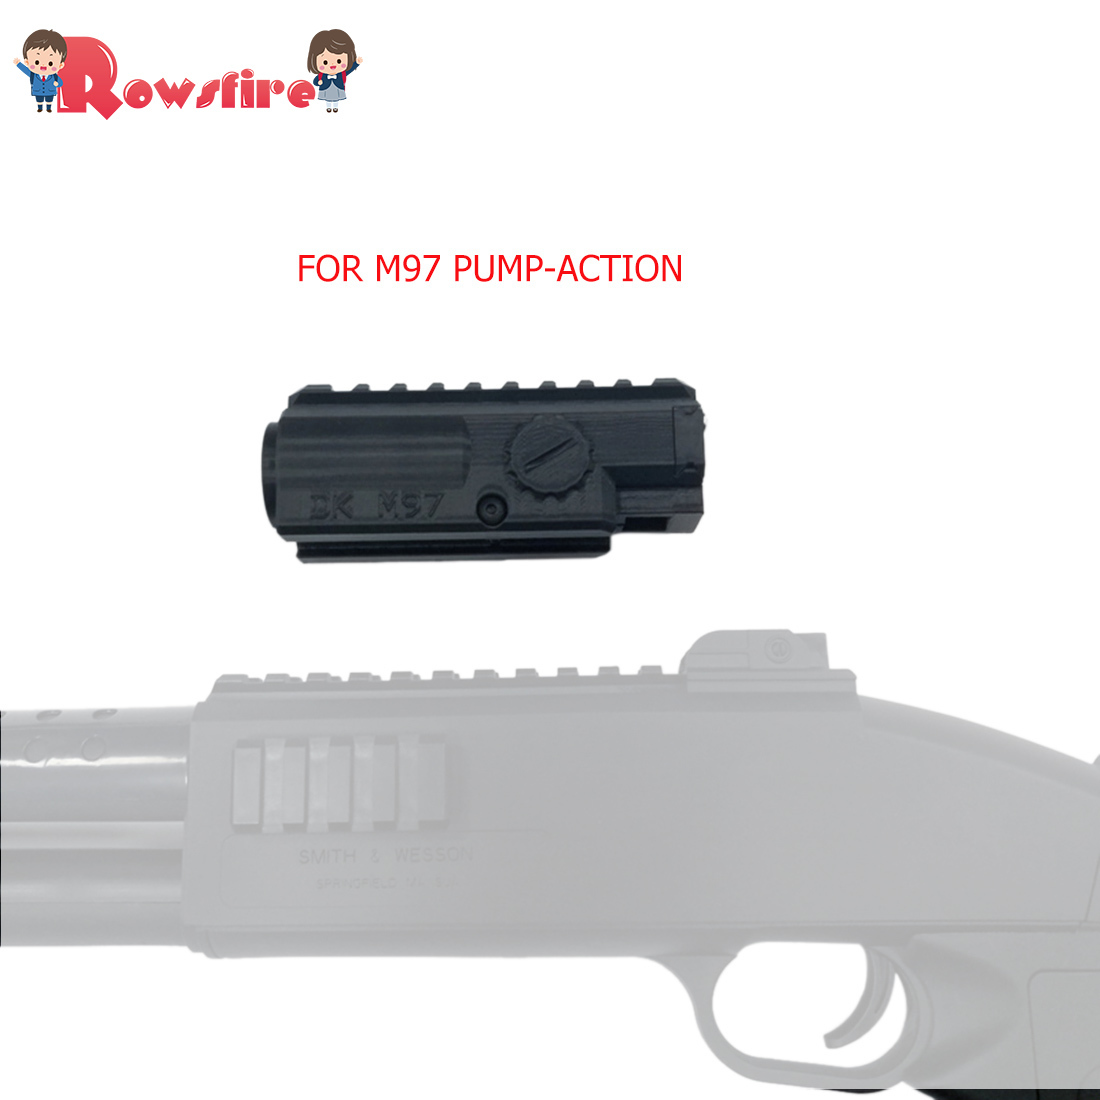 Rowsfire 1 Pcs Large Capacity Magazine For M97 Pump-Action Water Gel Beads Shot Blaster - Black